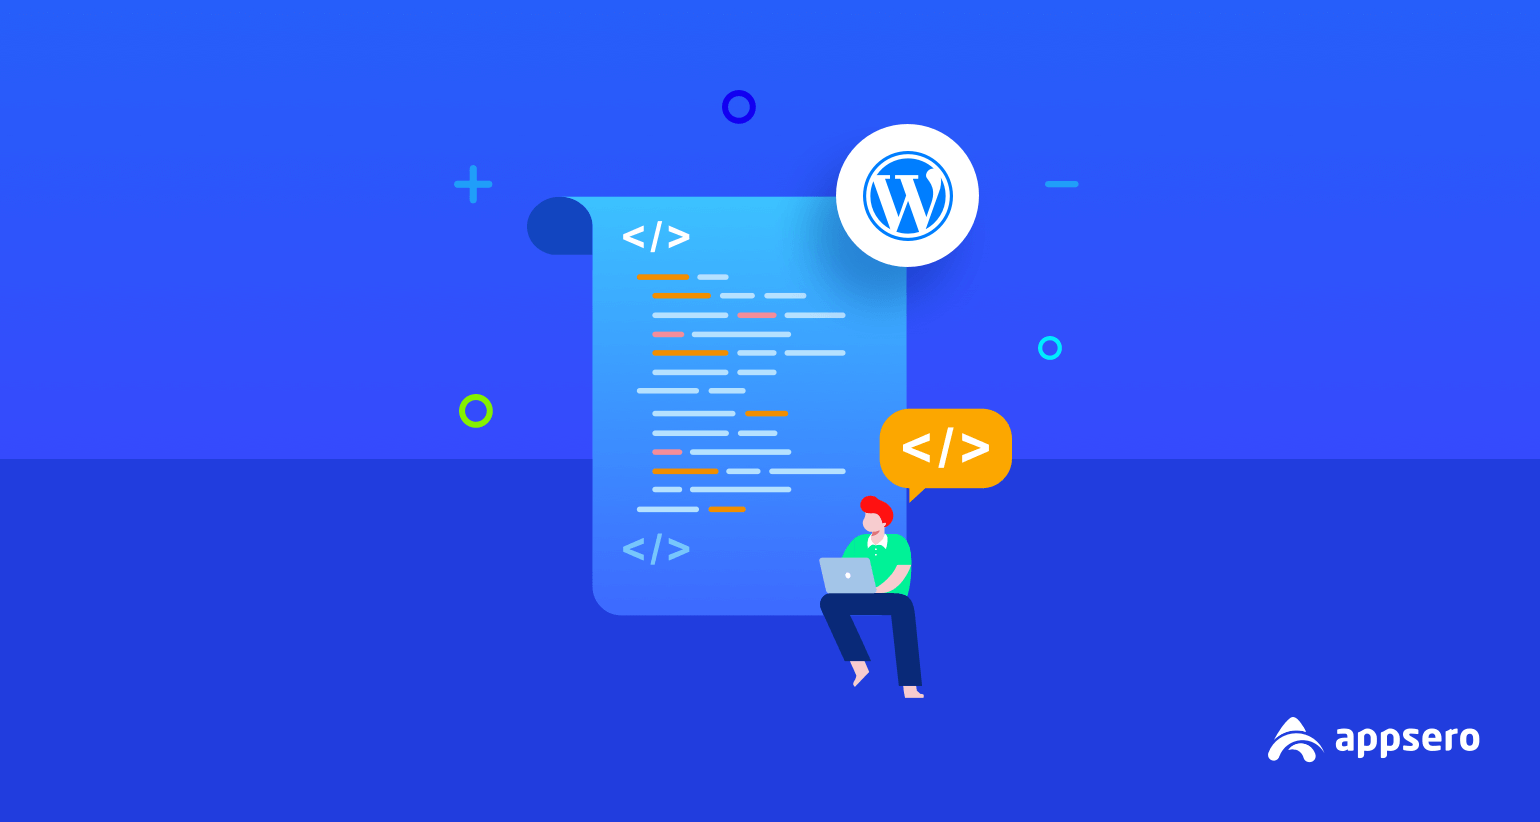 How to Become a WordPress Developer: 5 Tactics from Expert WordPress Developers